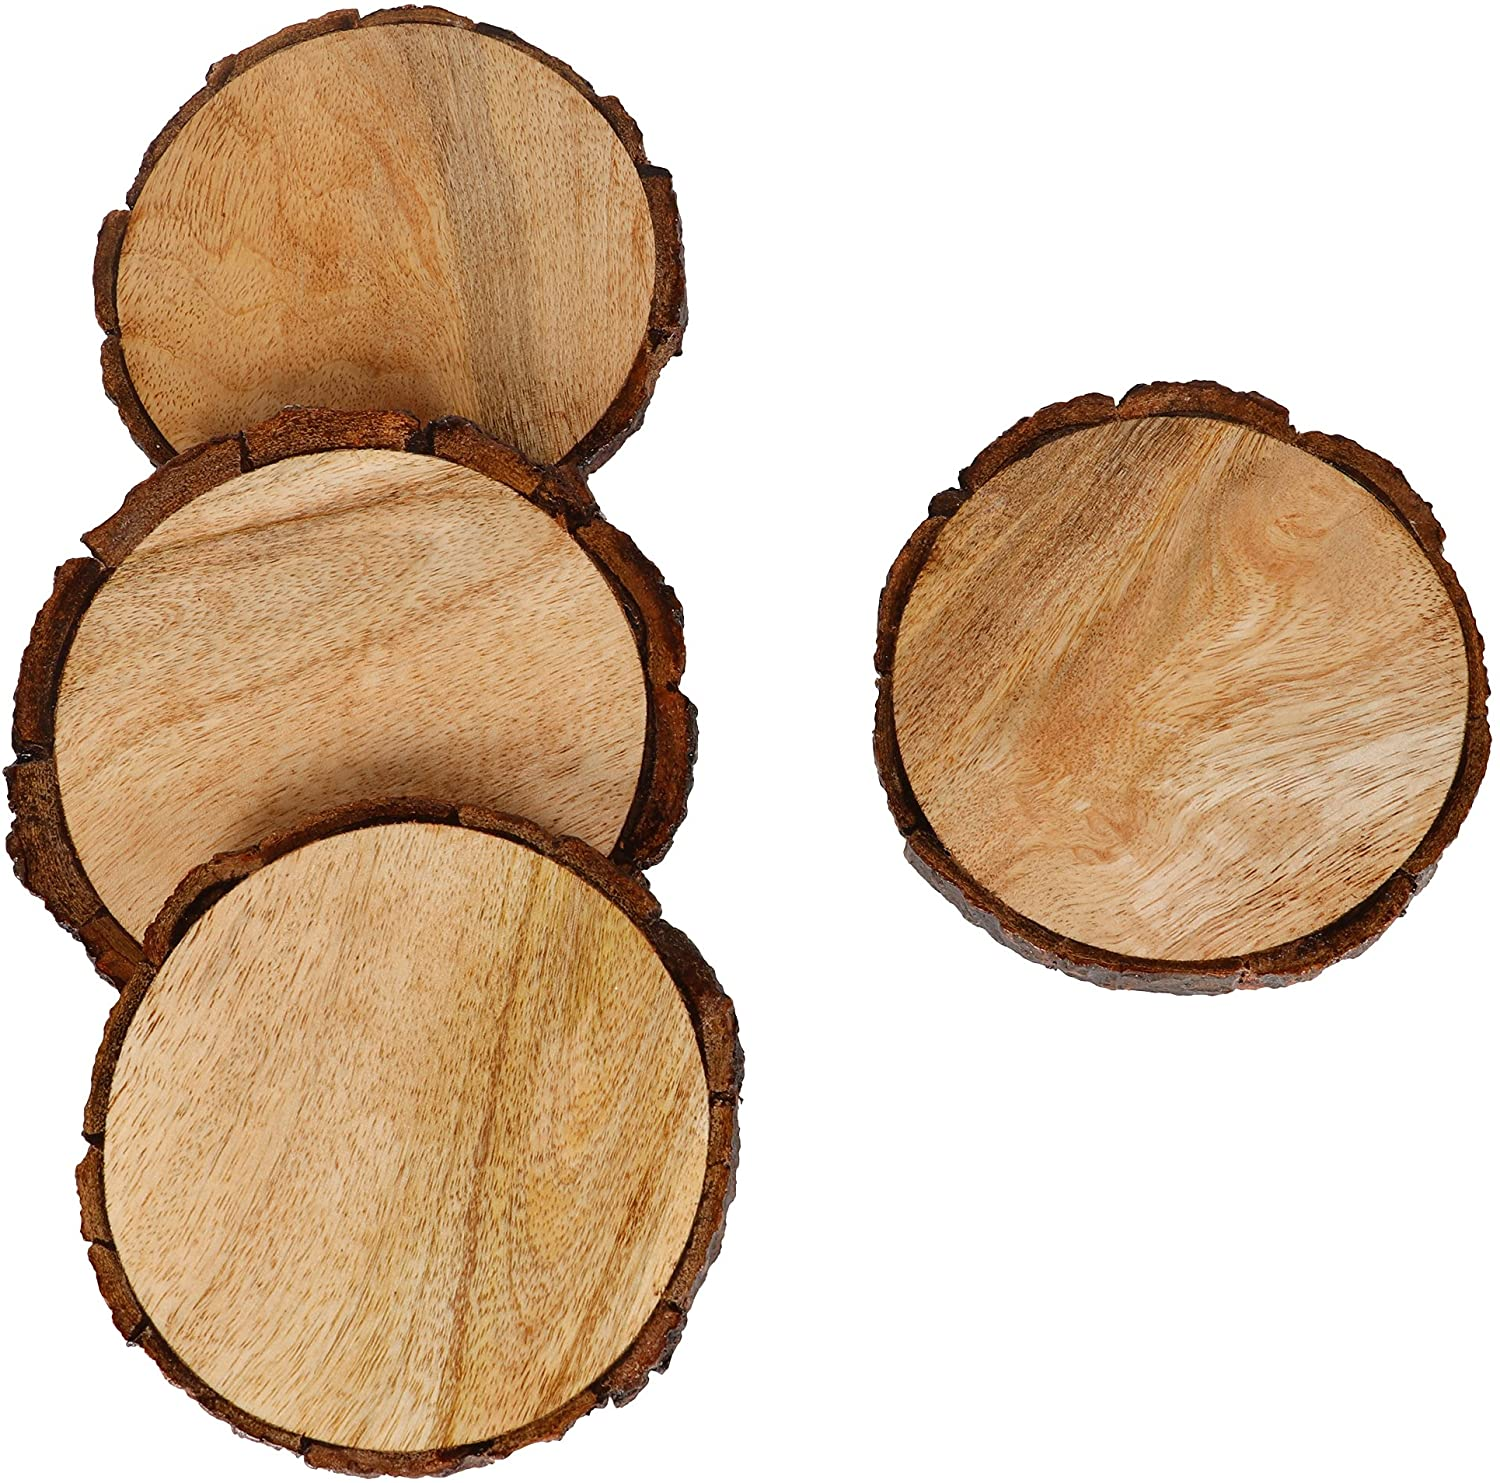 GoCraft Natural Wooden Coasters with Tree Bark | Mango Wood Coasters for Your Drinks, Beverages & Wine/Bar Glasses (Coasters Set of 4)